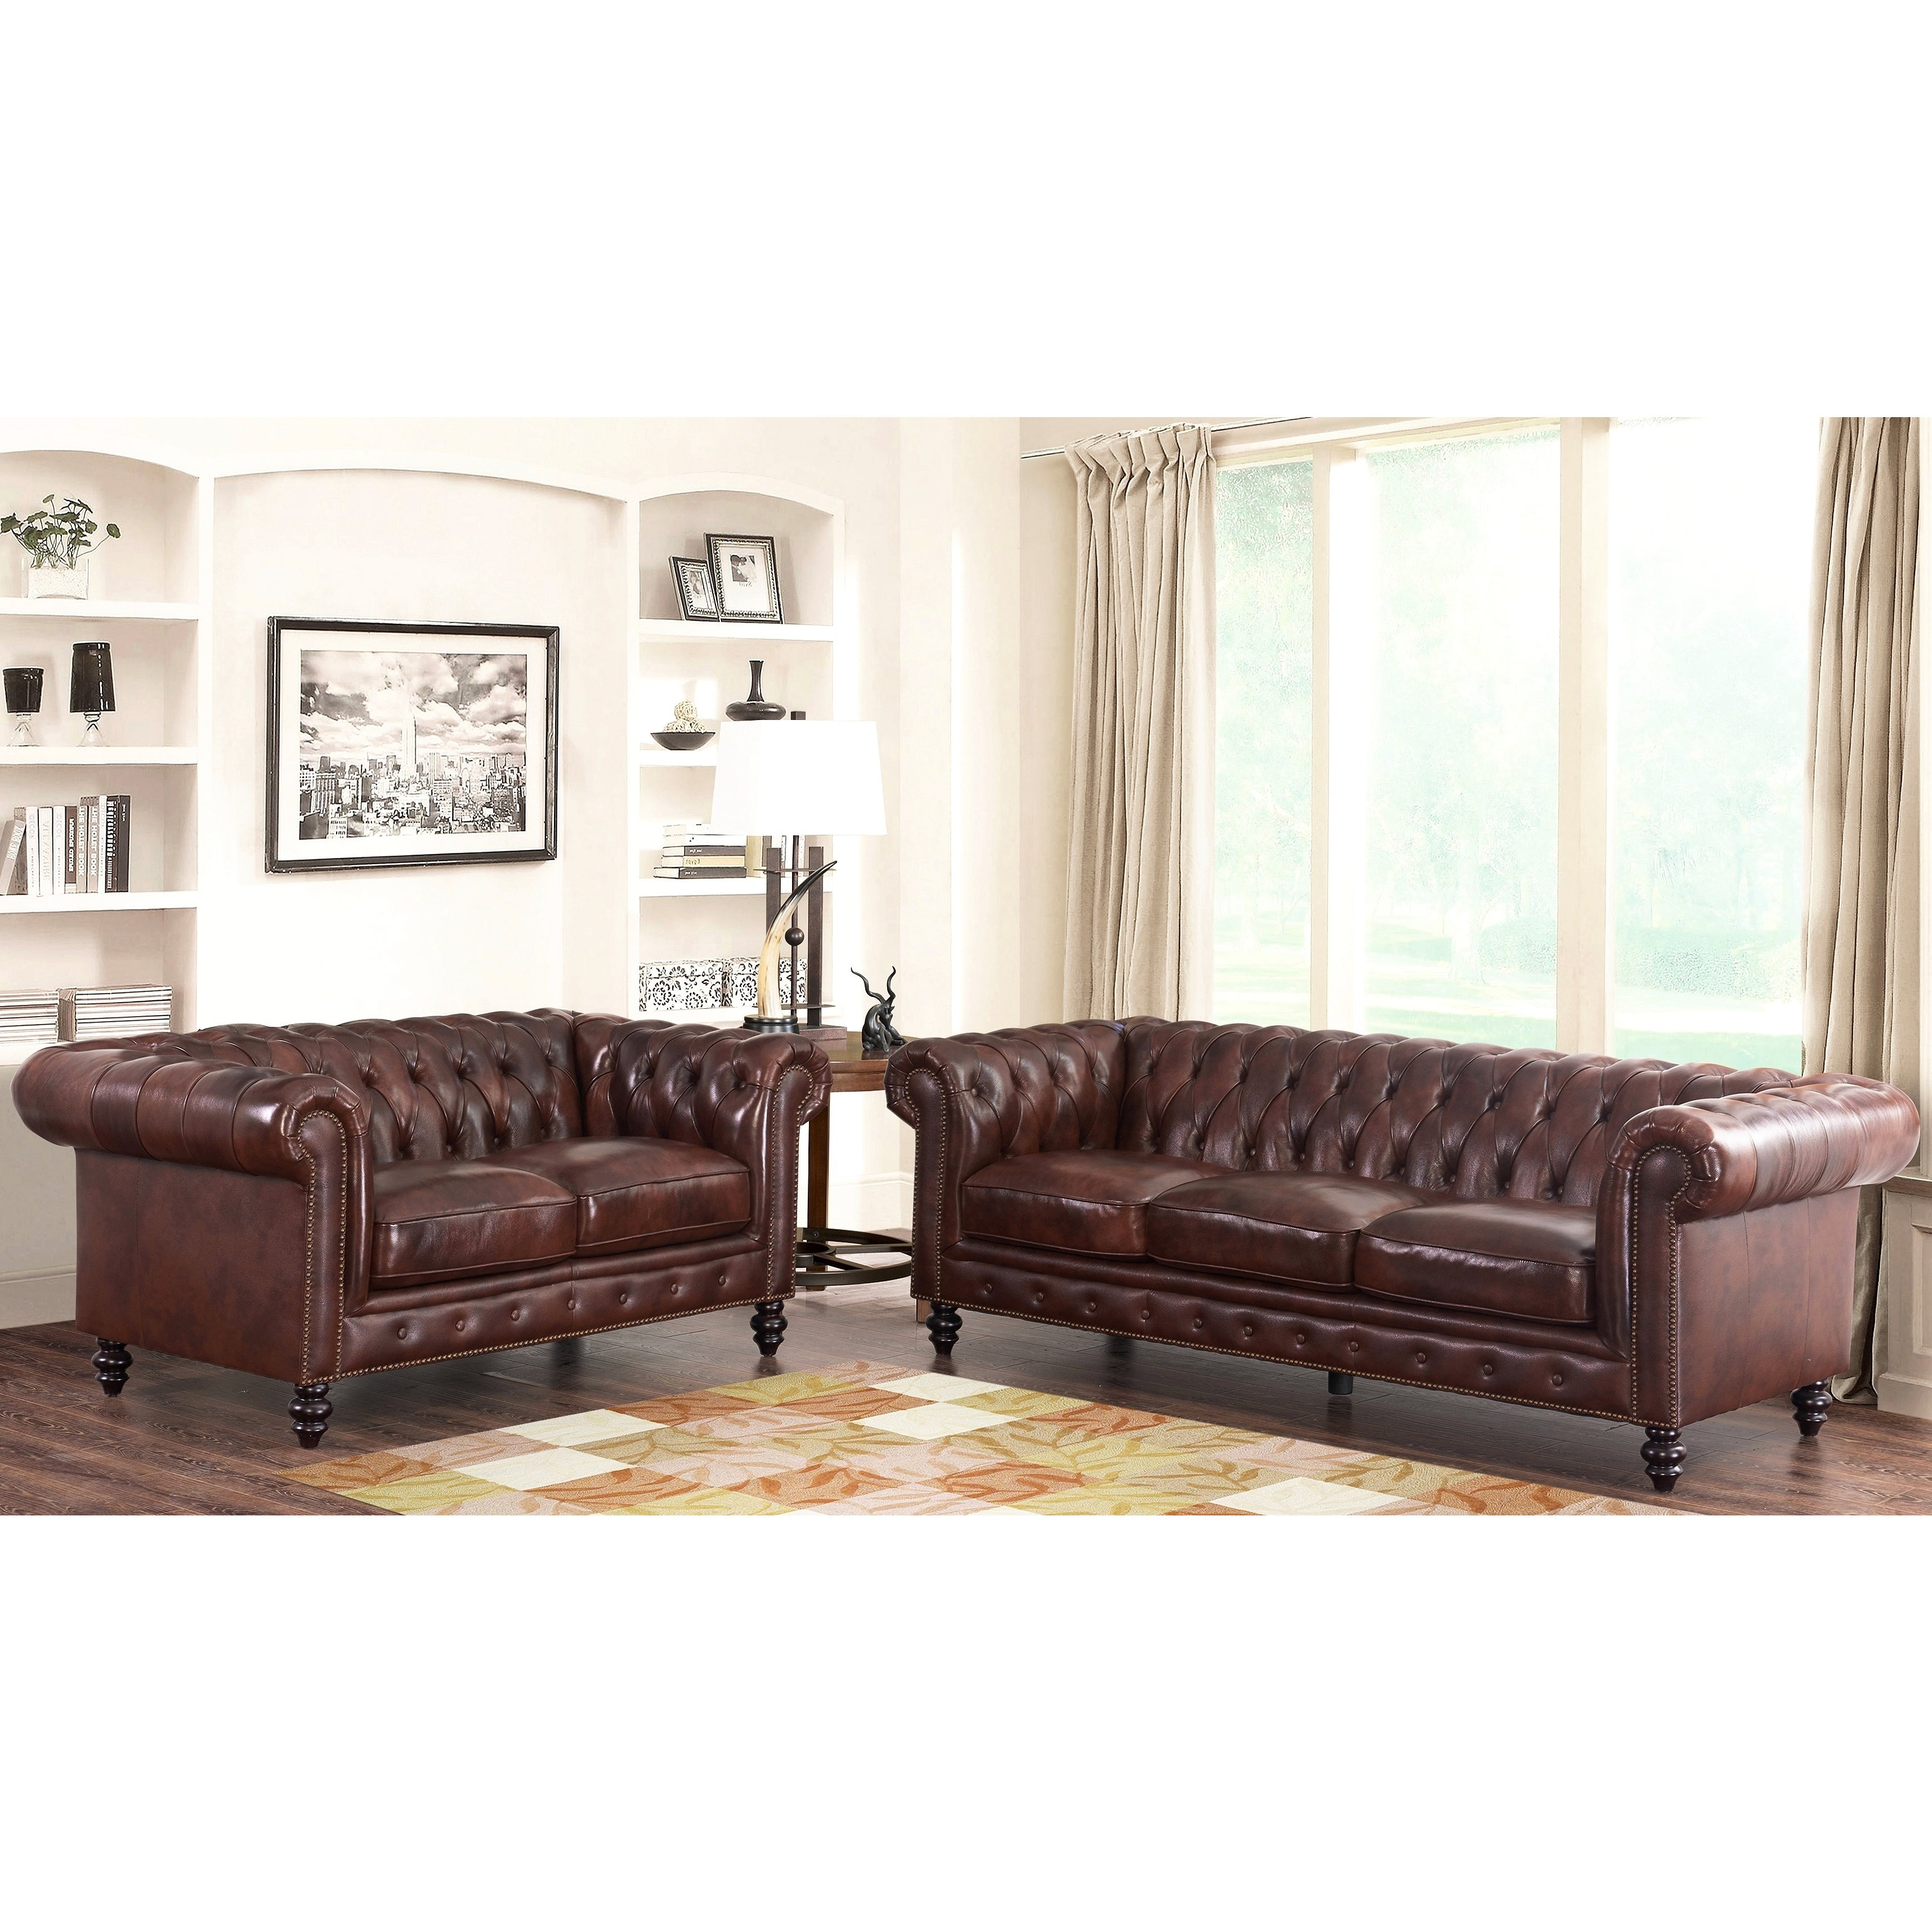 Shop Abbyson Grand Chesterfield Brown Top Grain Leather 2 Piece ...